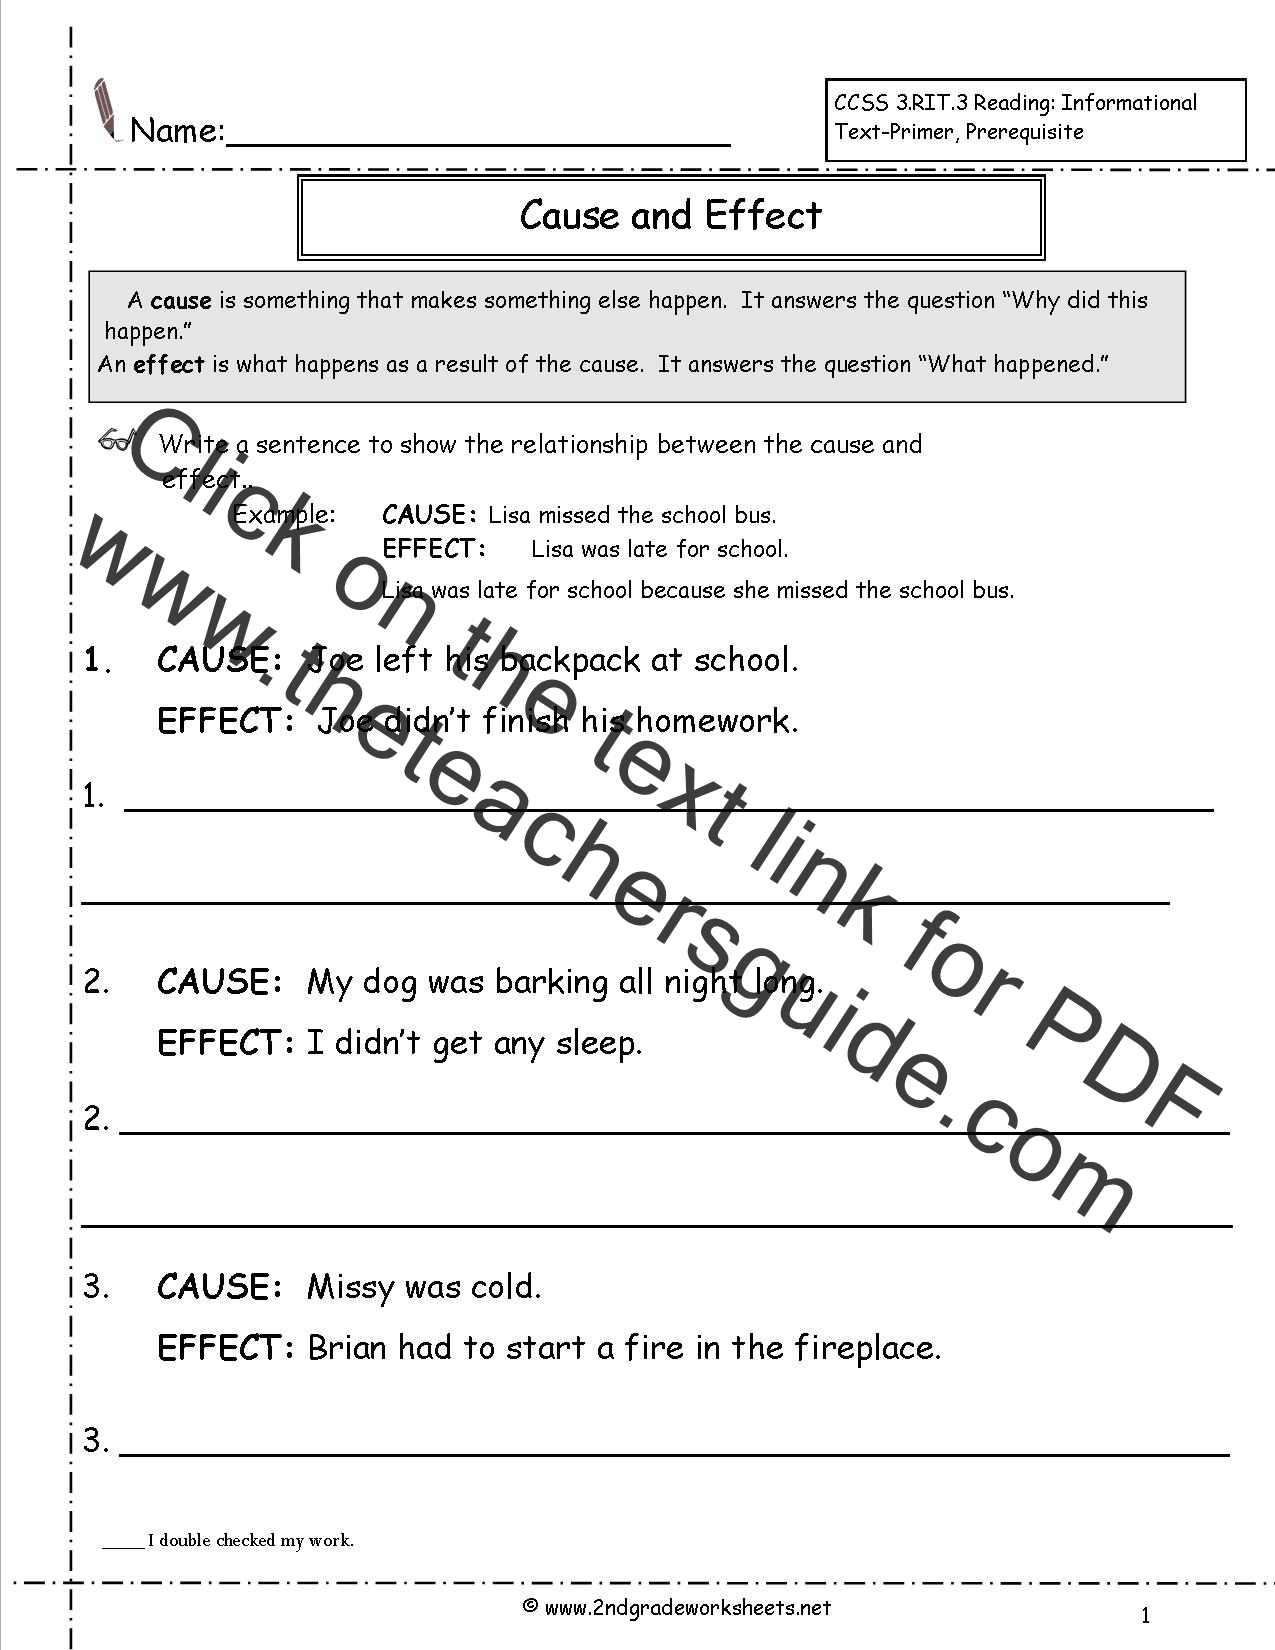 Worksheet For Grade 2 Cause And Effect